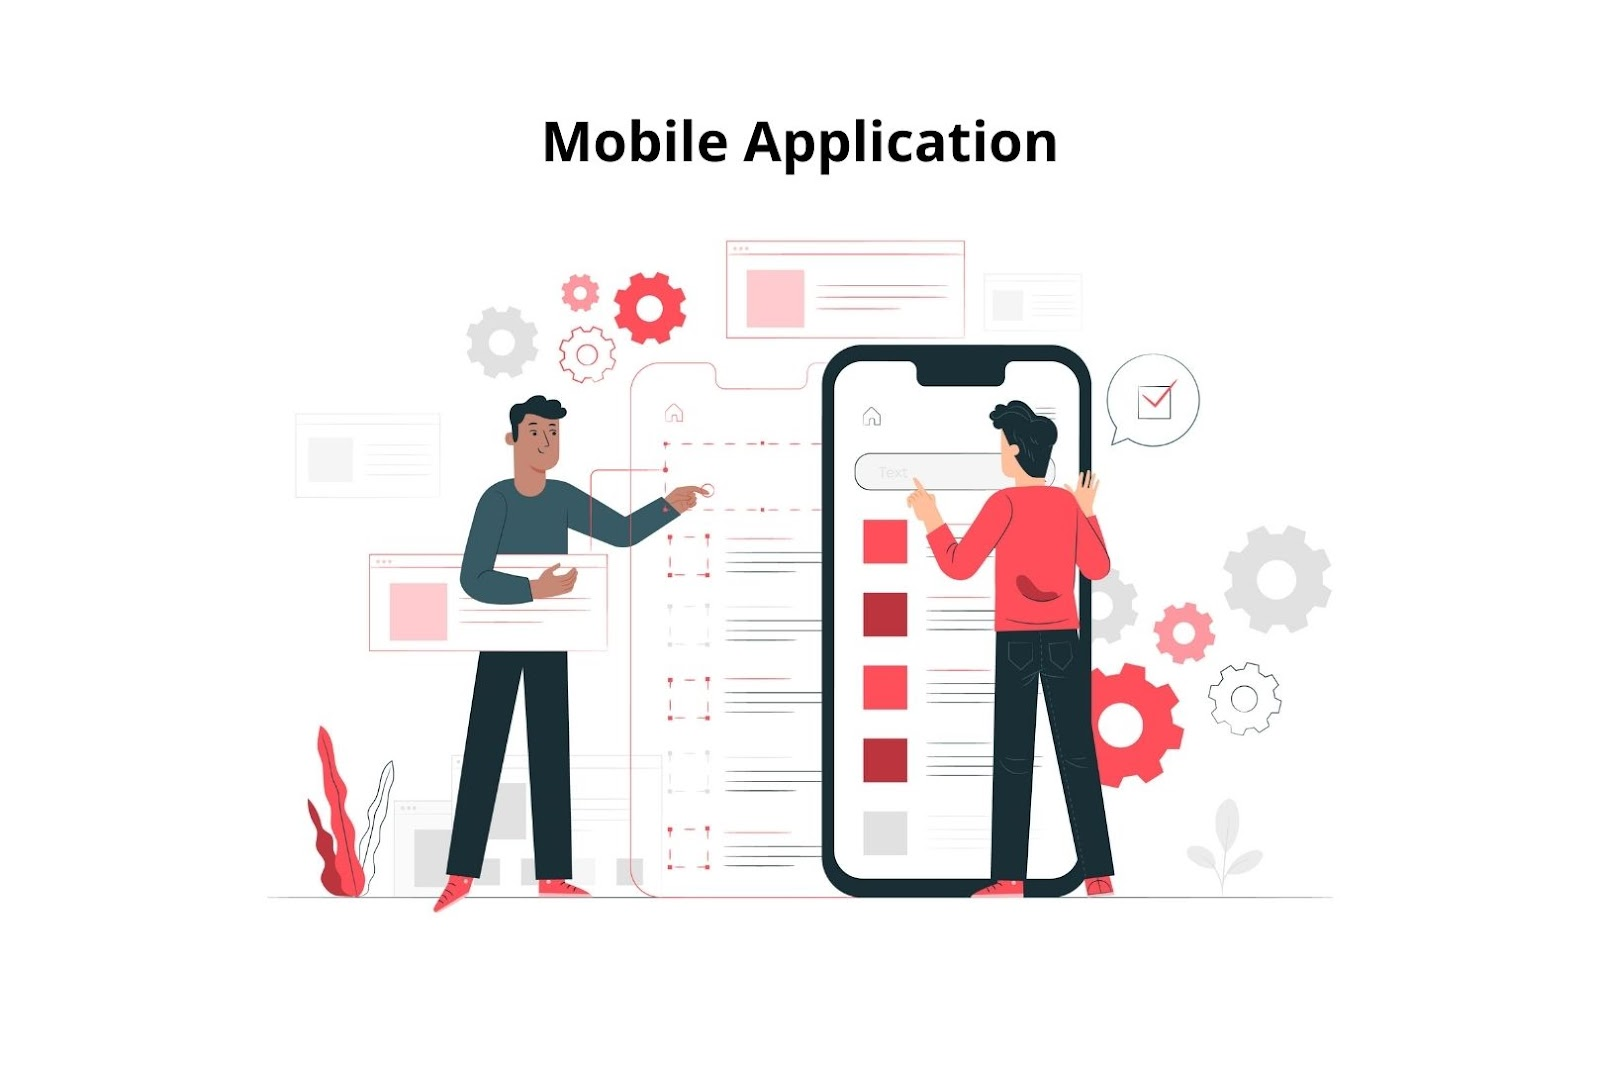 Advantages of Mobile applications